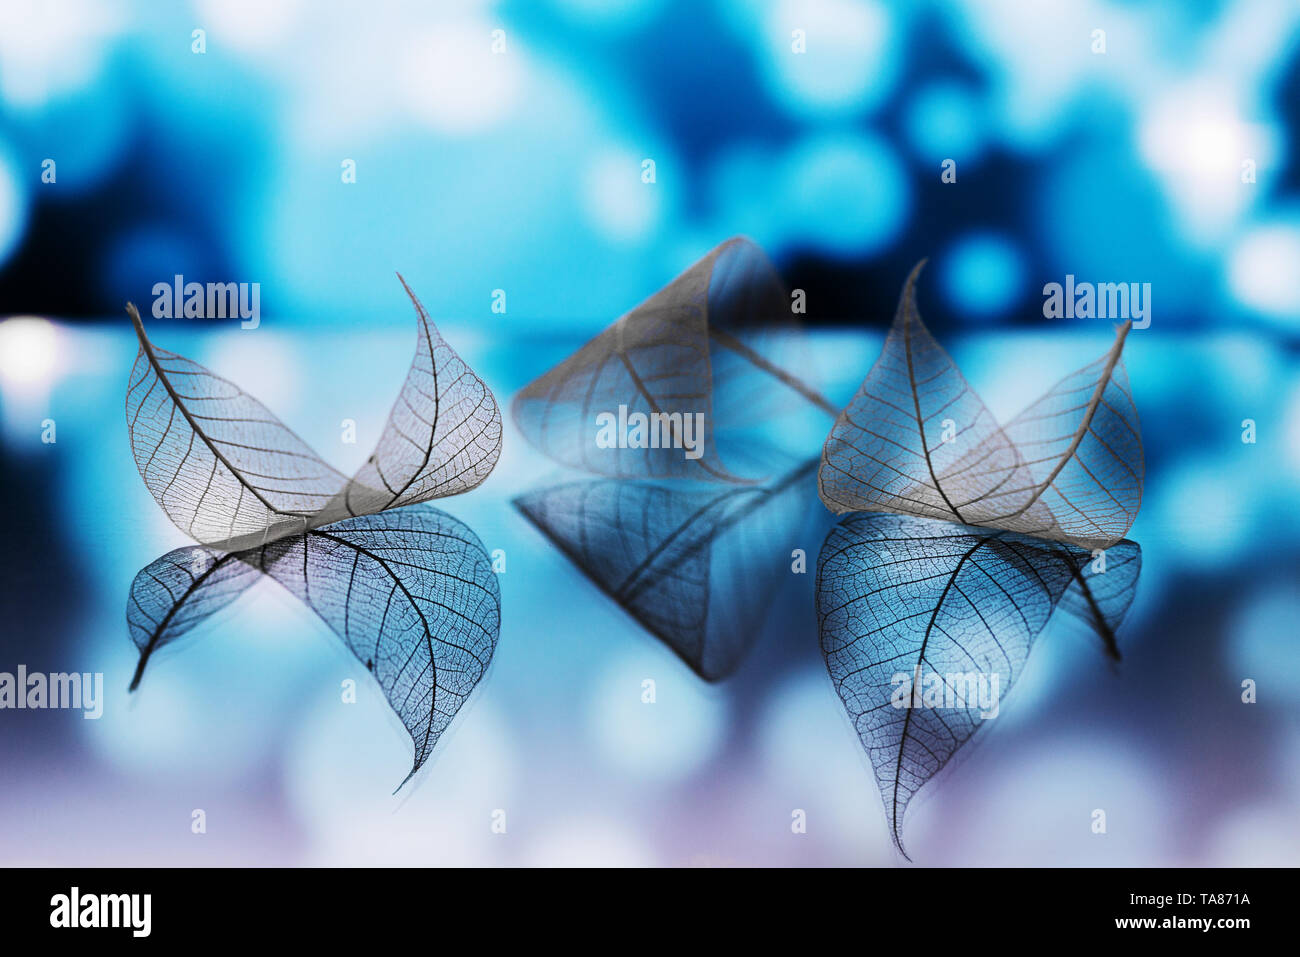 Transparent white leaves are on mirror surface with reflection on dark-blue background, abstract macro with bokeh. Artistic image of ship in lake wate - Stock Image